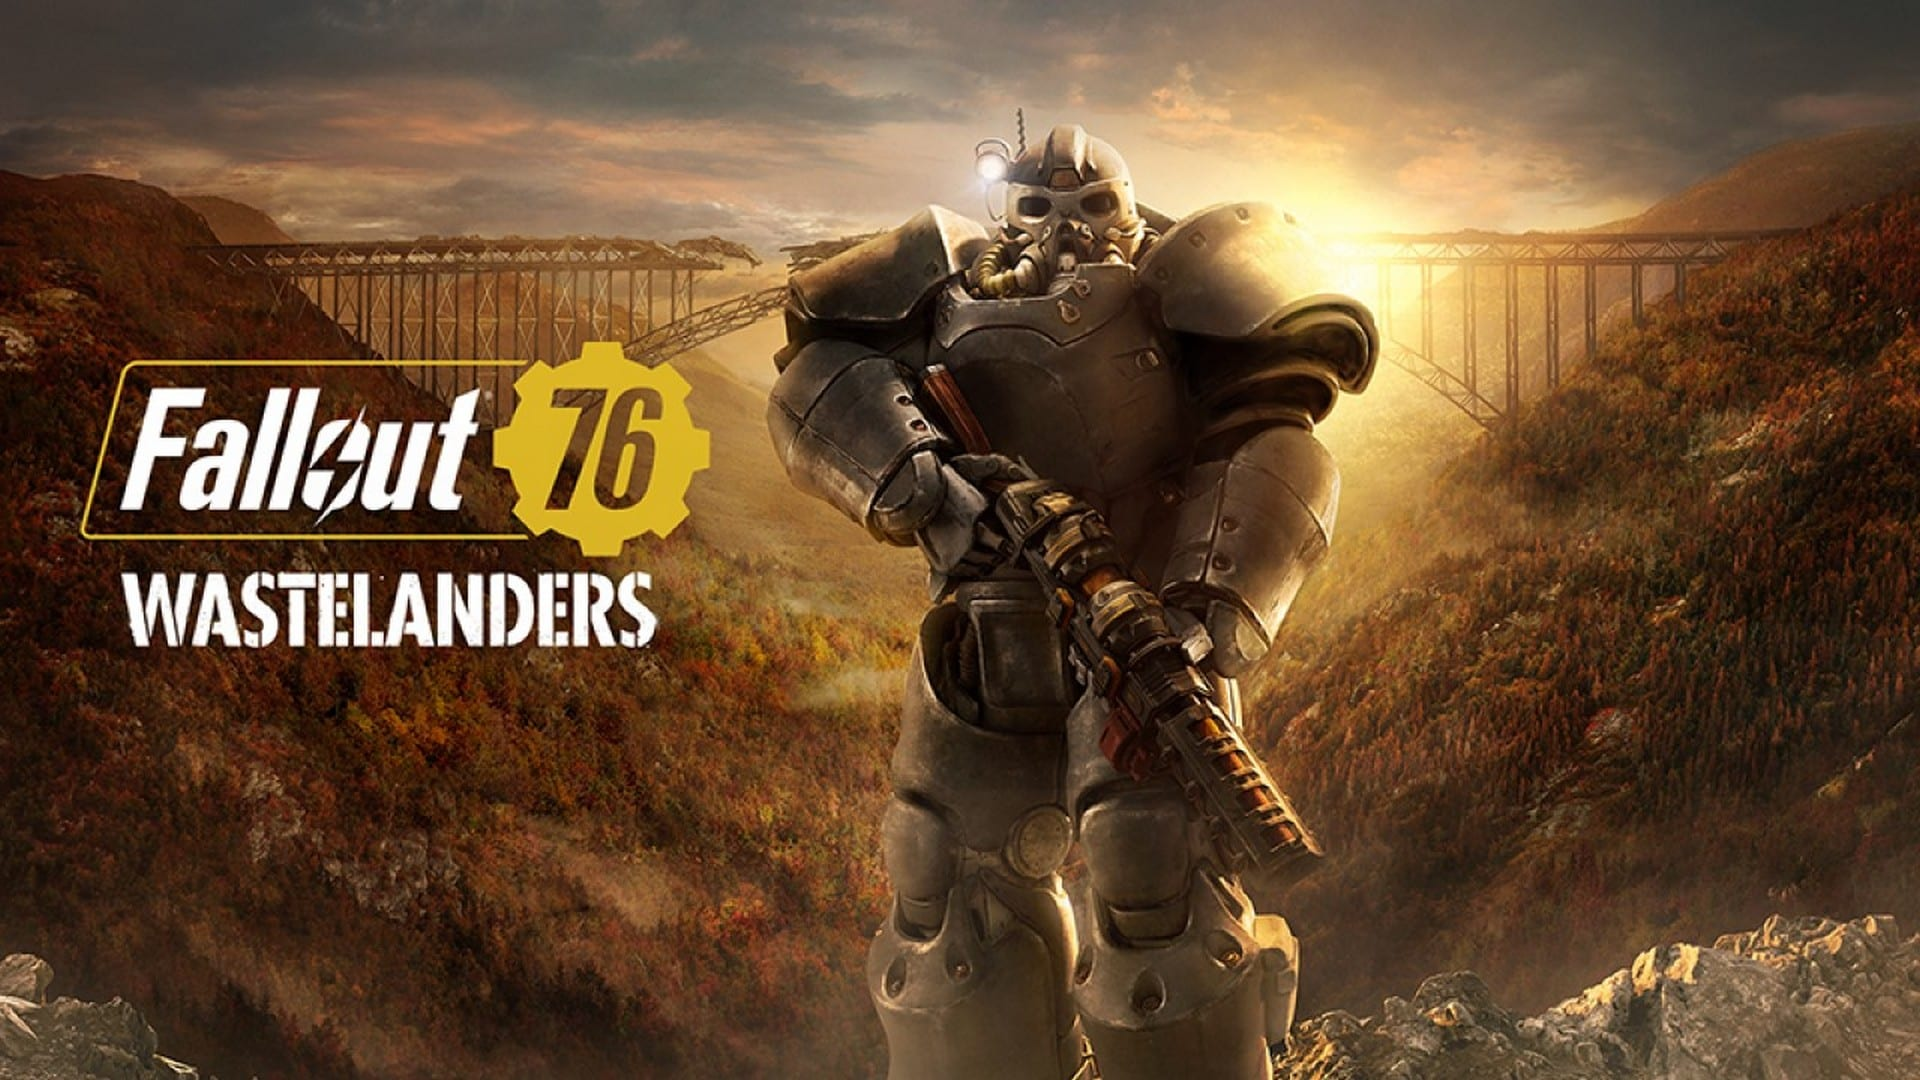 Fallout 76 – Free Wastelanders Update Announced for April 7, 2020